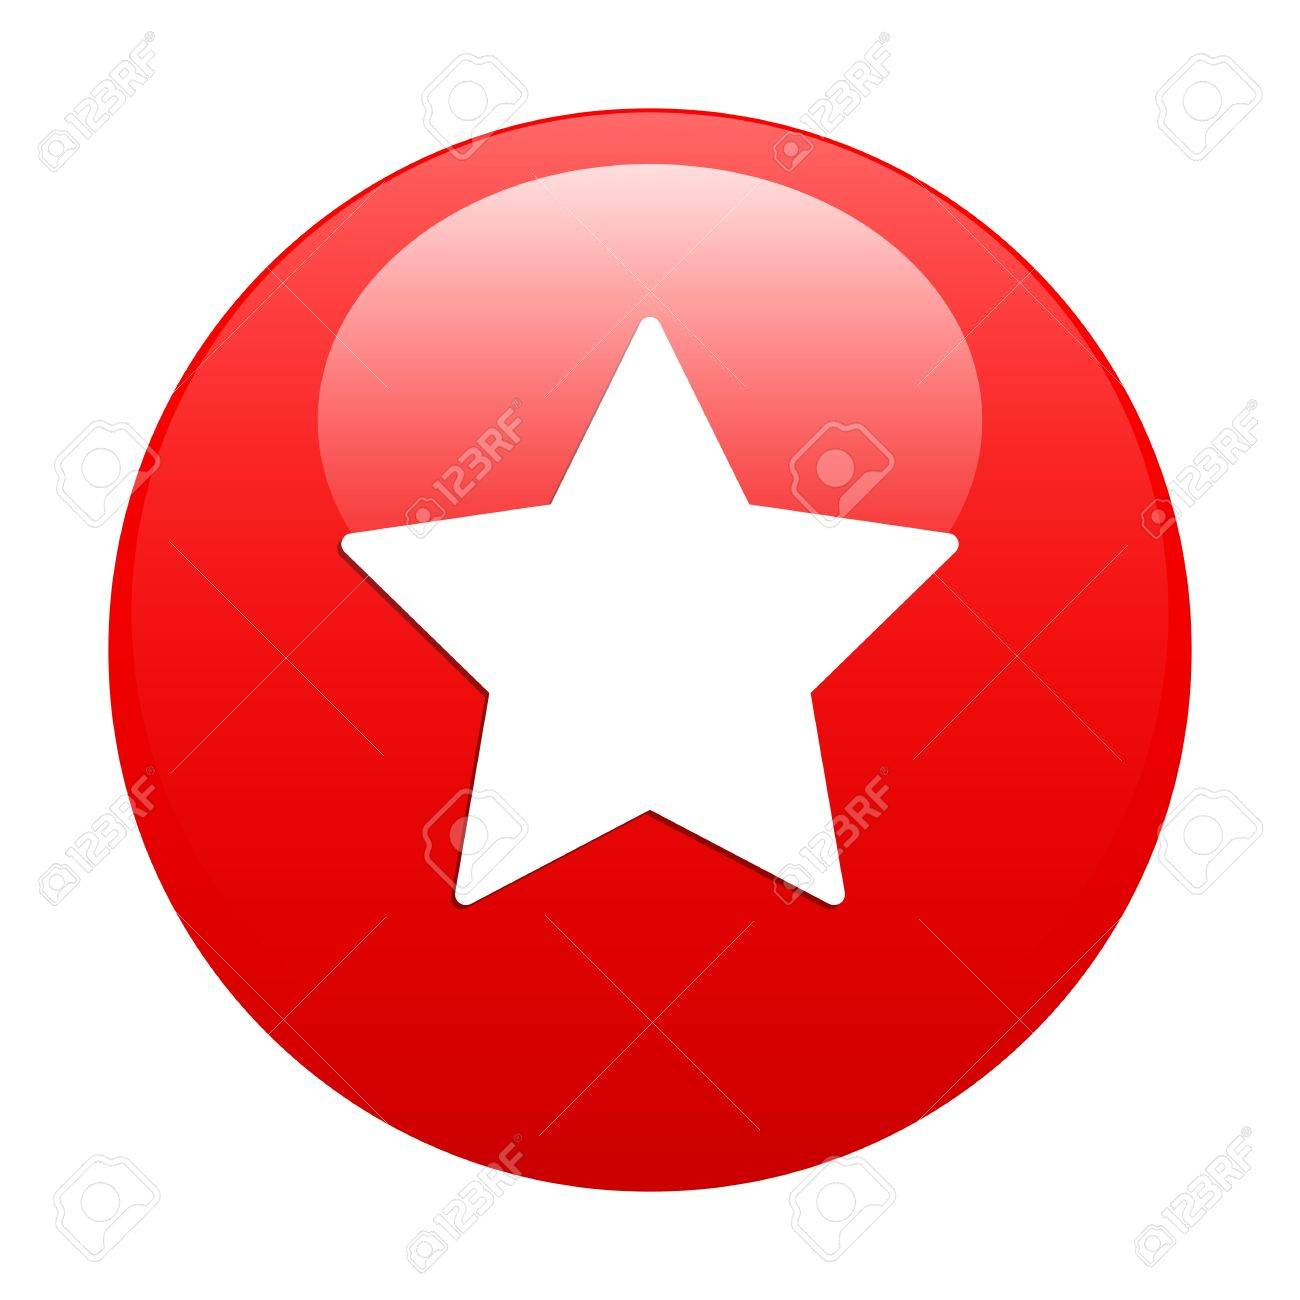 Bouton Web Favori star icon red Stock Vector - 21635092